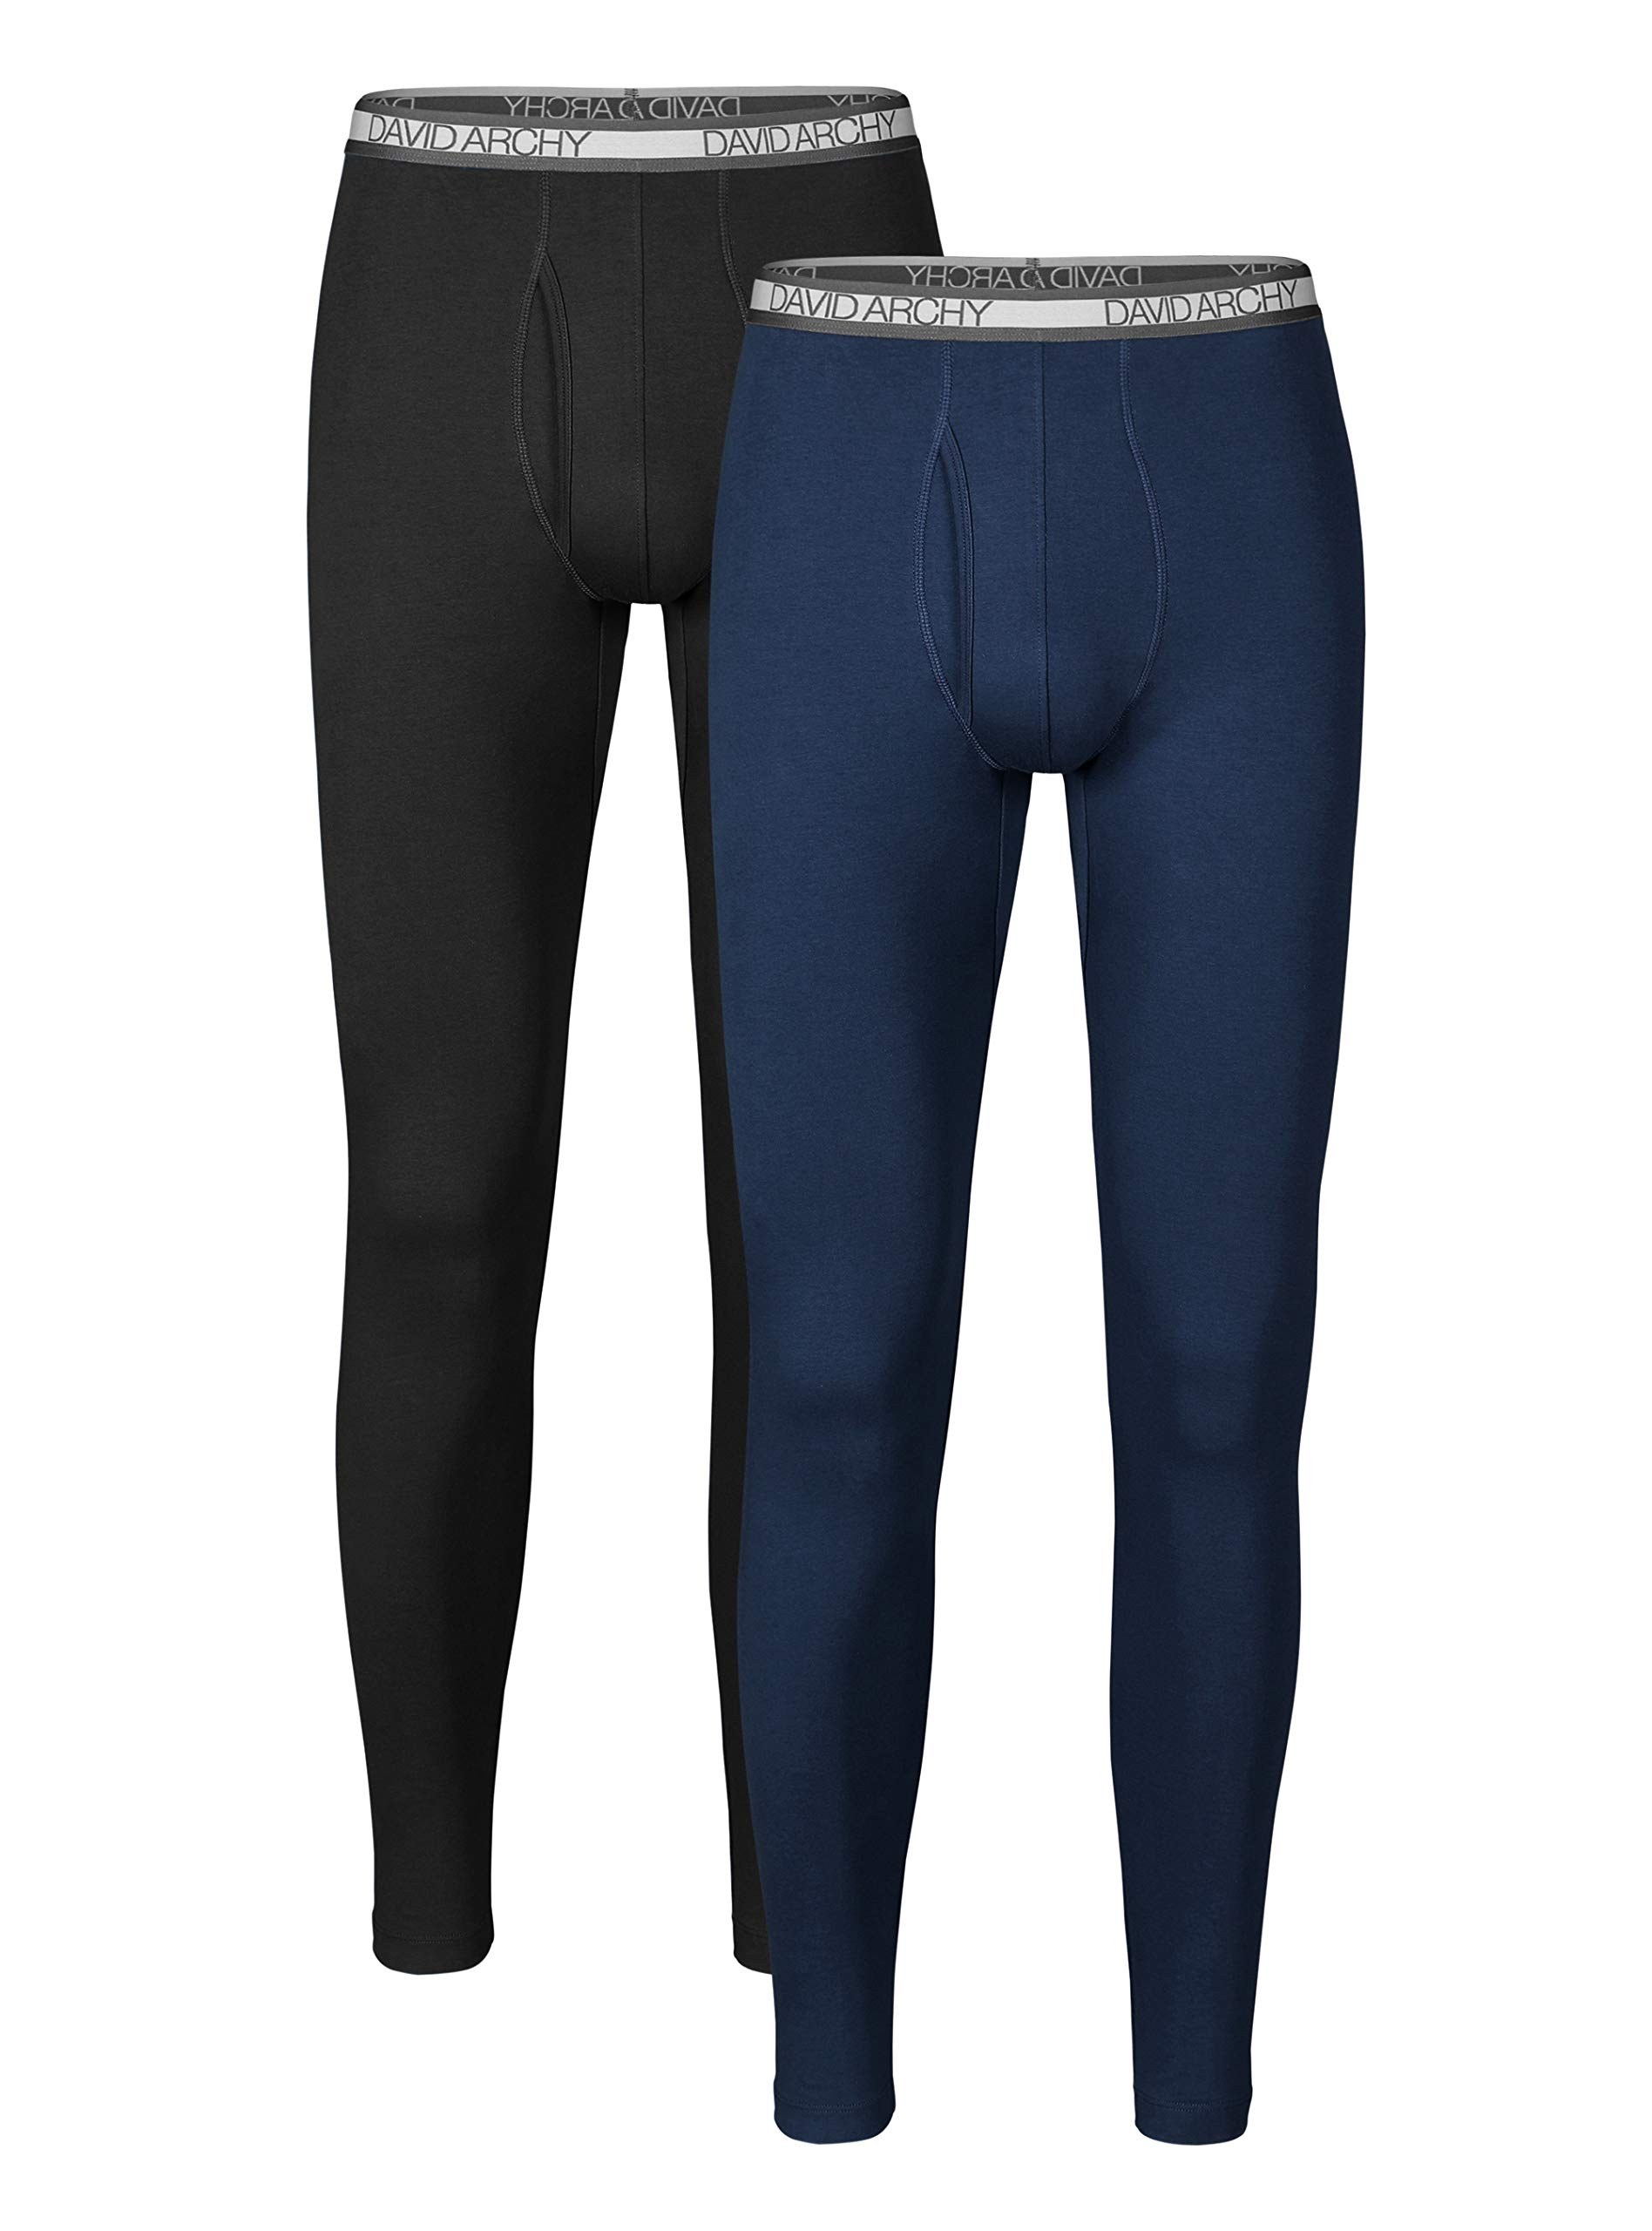 David Archy Men's 2 Pack Winter Warm Stretchy Cotton Fleece Lined Base Layer Pants Thermal Bottoms Long Johns with Fly (L, Black/Navy Blue) by David Archy